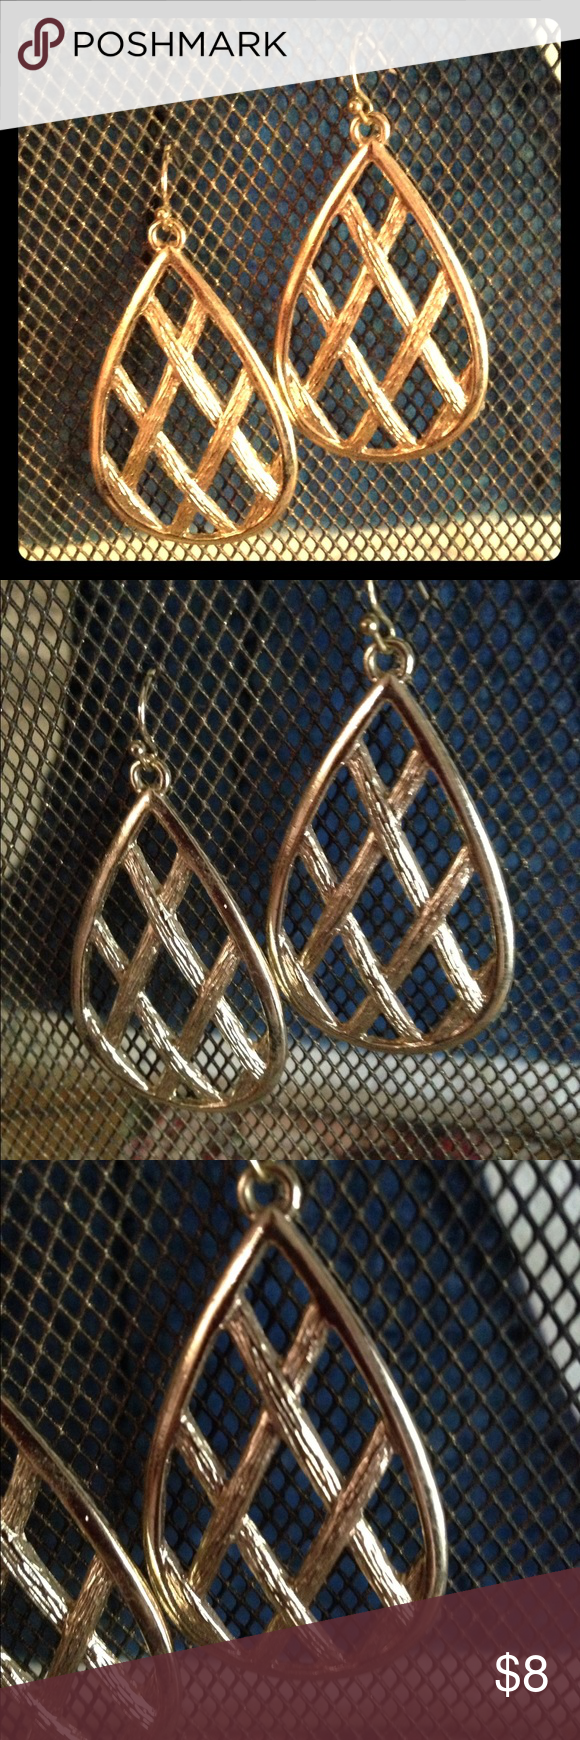 Gold tone basket print earring This is from the Sally C collection at Charming Charlie. Charlie's mothers collection she also sold on qvc, so a little more expensive than the average cc jewelry. Thank you for looking!! ❤️❤️offers always considered and don't forget the bundle option ❤️❤️❤️ Jewelry Earrings